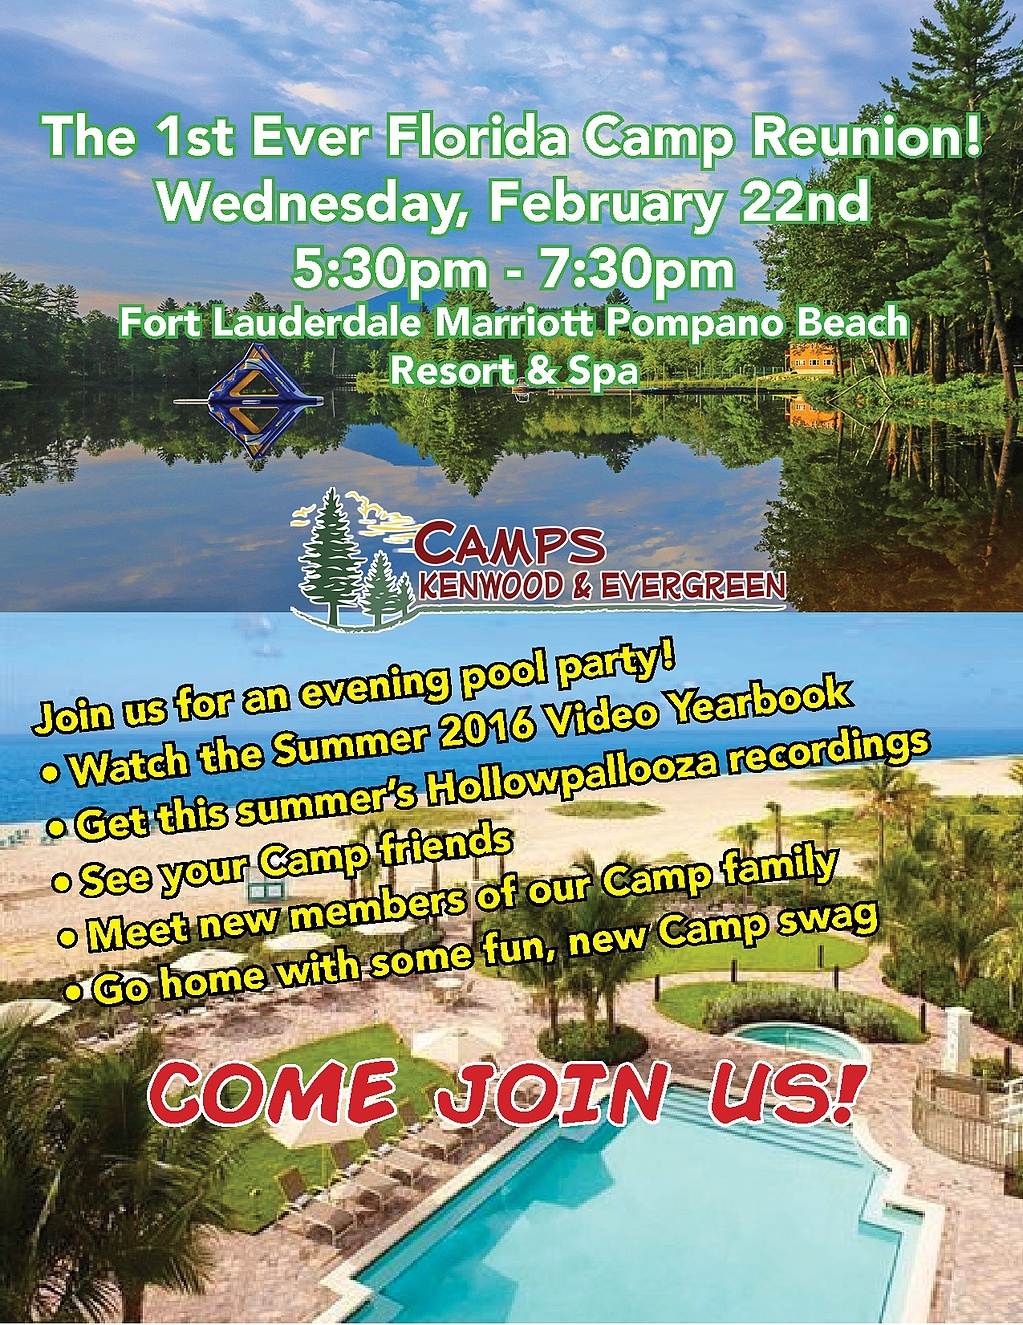 Camp Reunion Invite - Florida.jpg